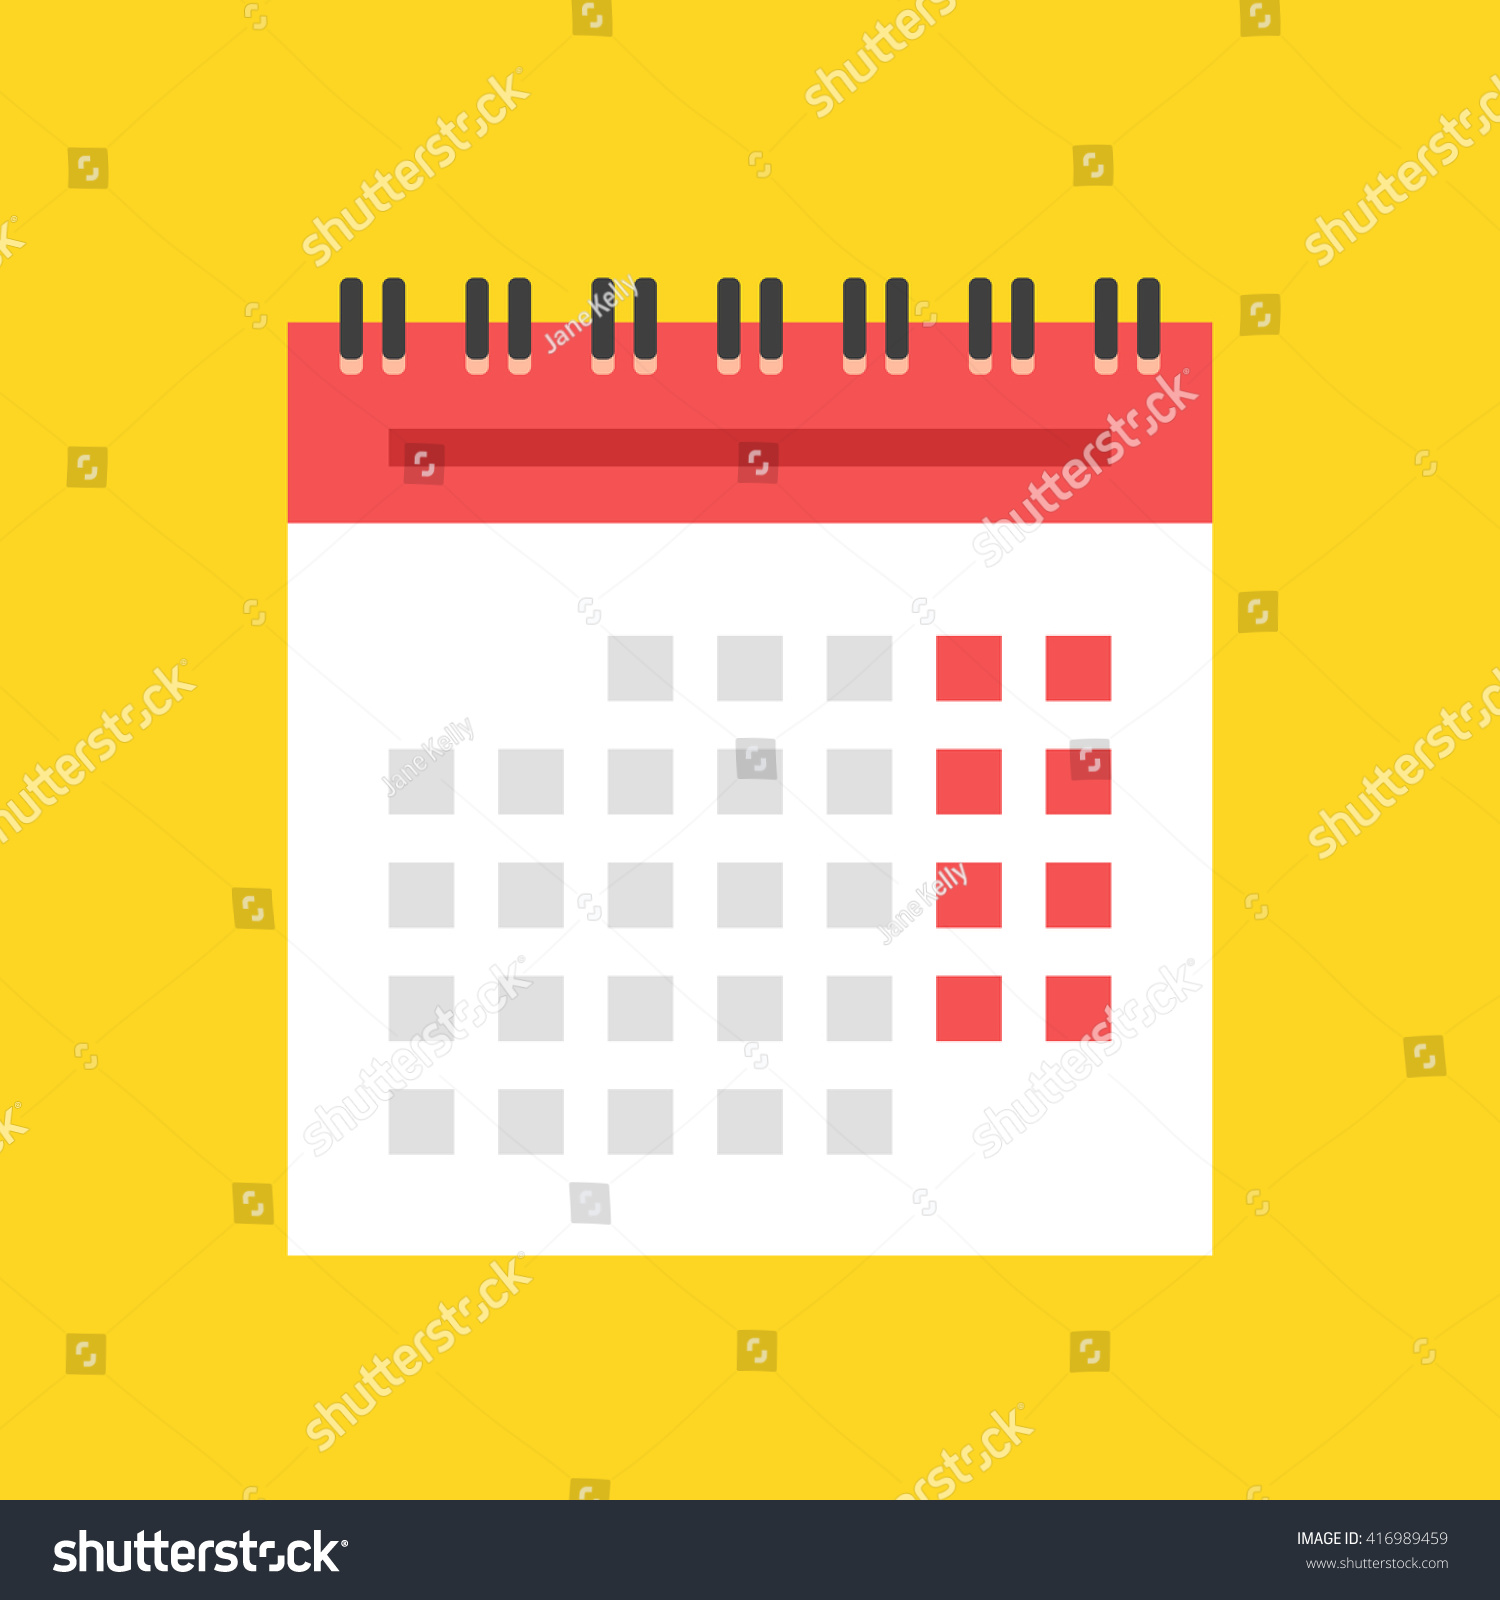 Illustration Calendar Design : Calendar flat icon european version spiral stock vector